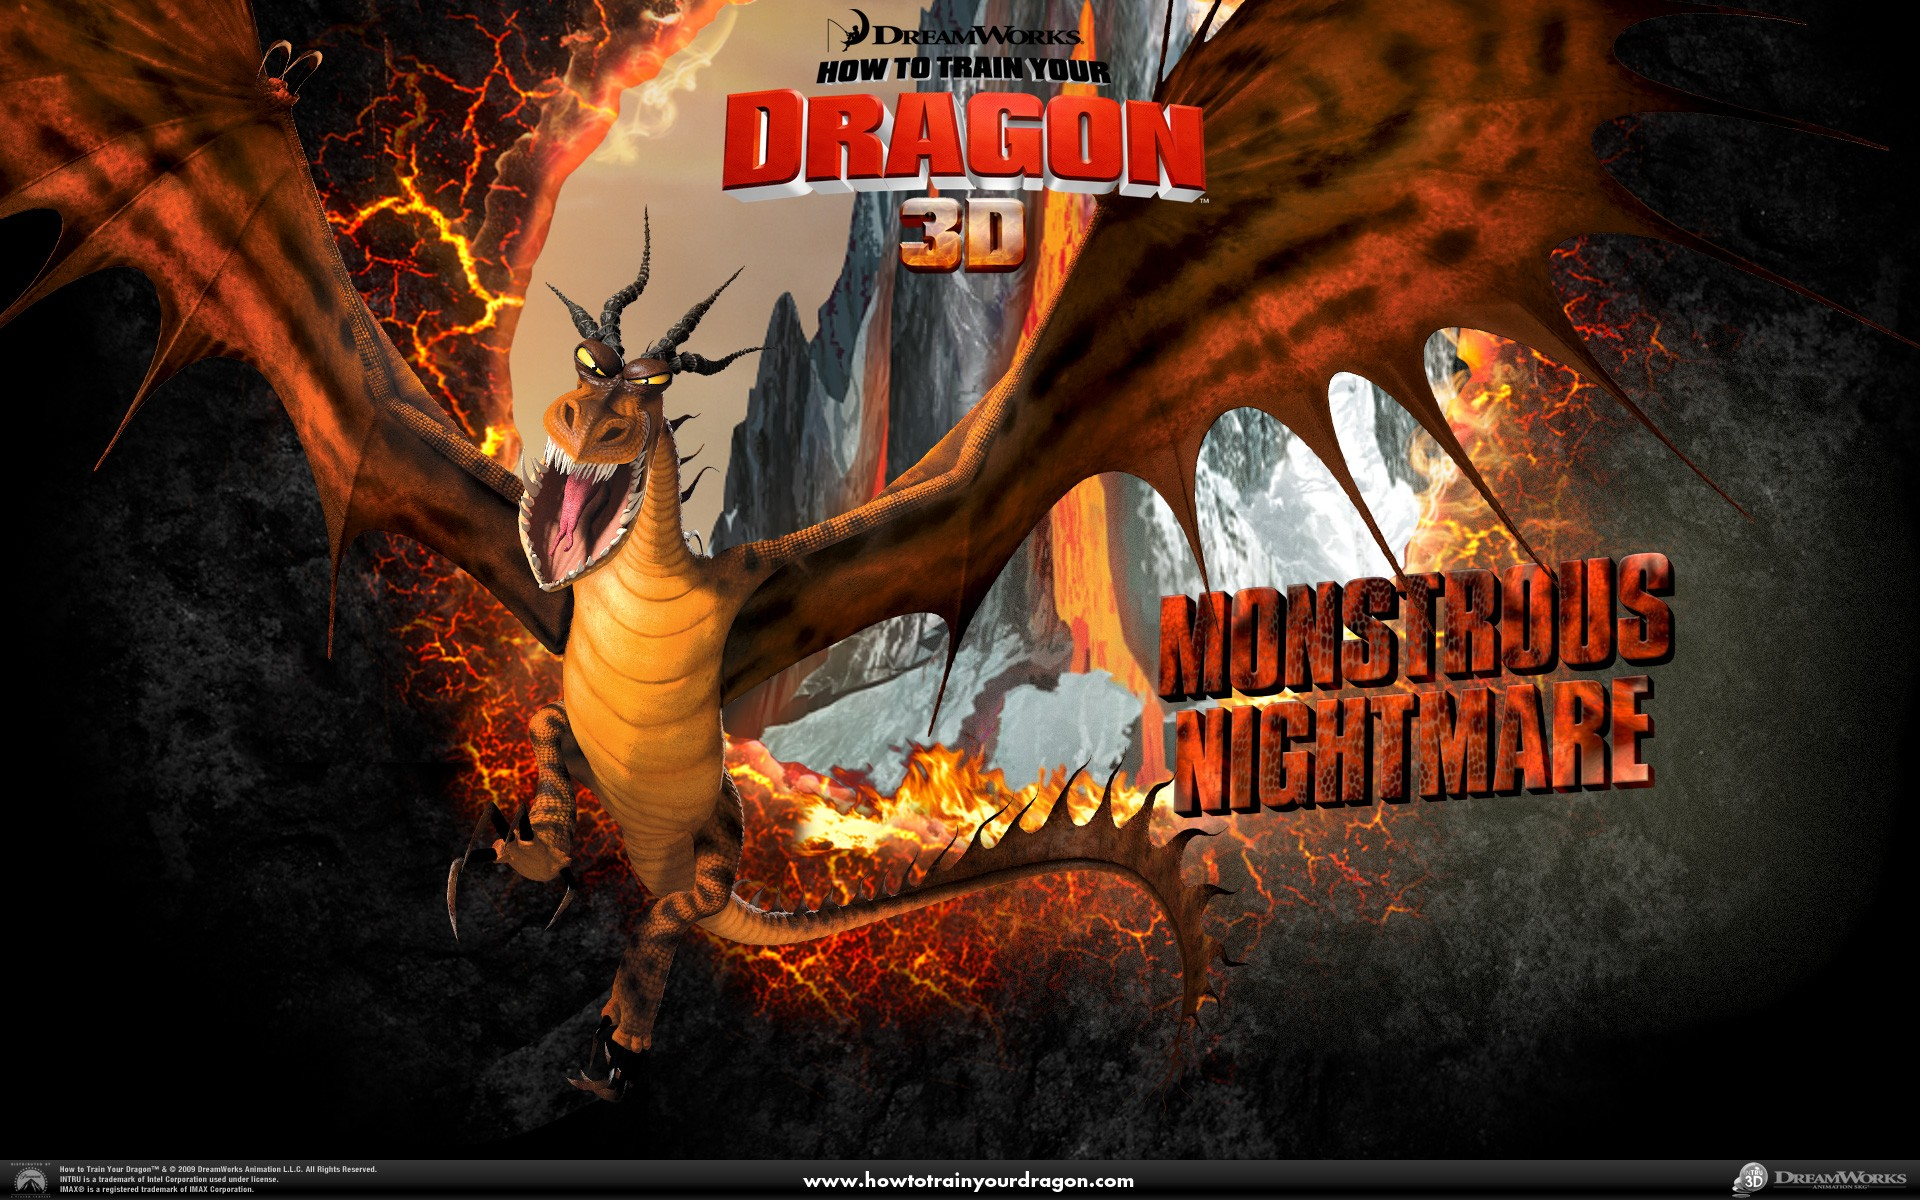 Un wallpaper ufficiale del drago Incubo Orrendo del film Dragon Trainer